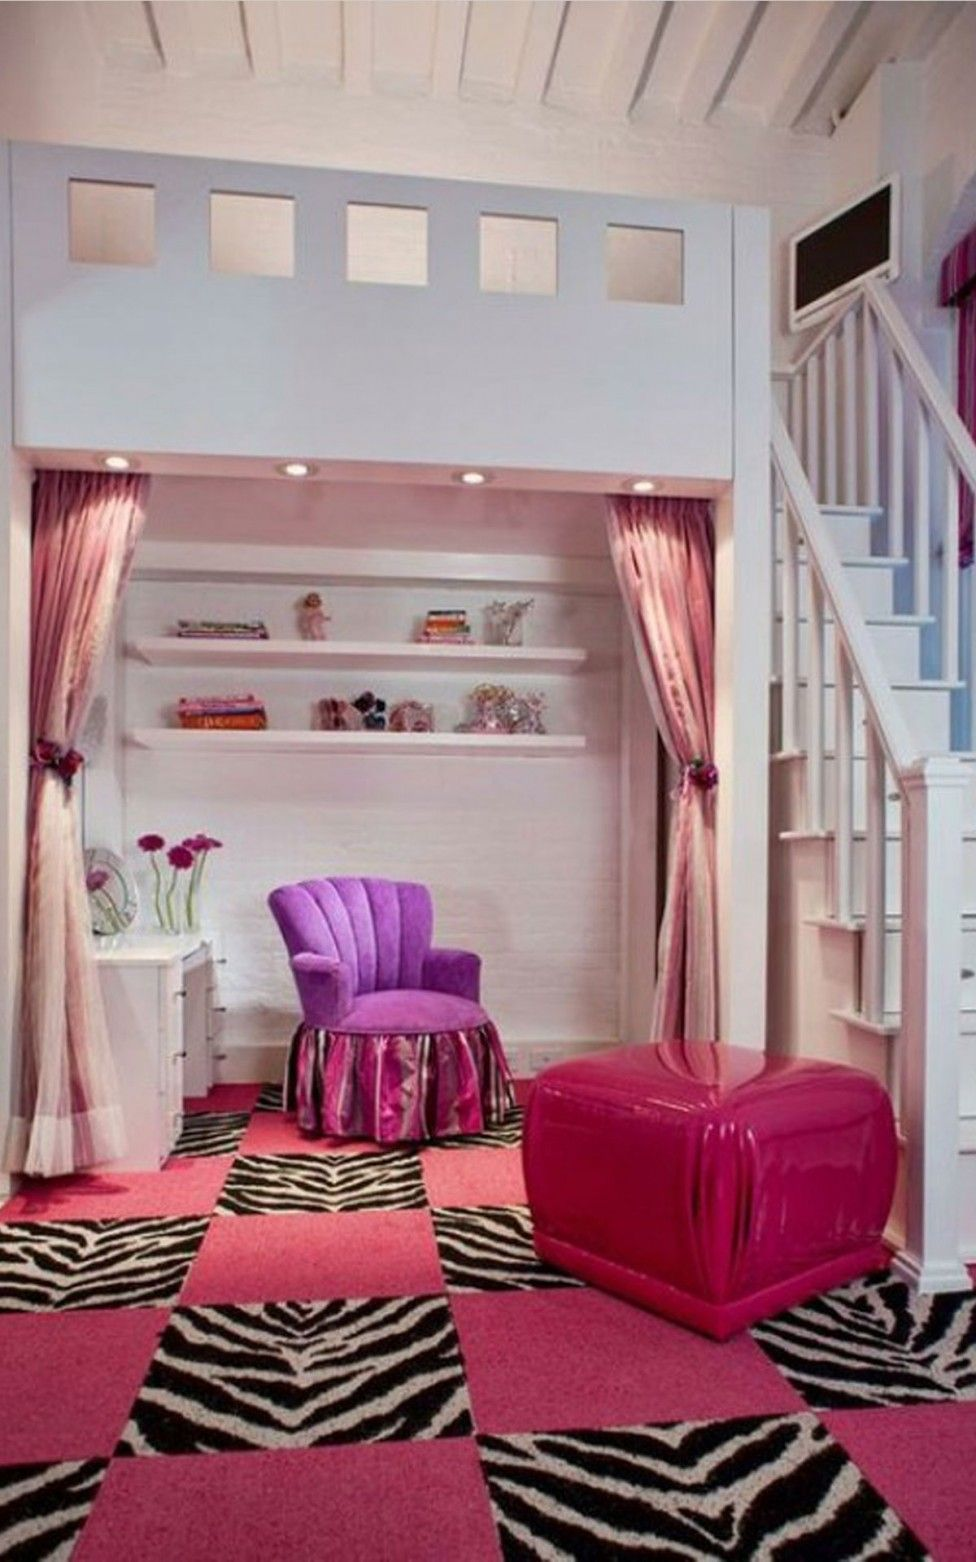 Small room ideas for girls with cute color bedroom 22 for Bedroom teenage girl ideas